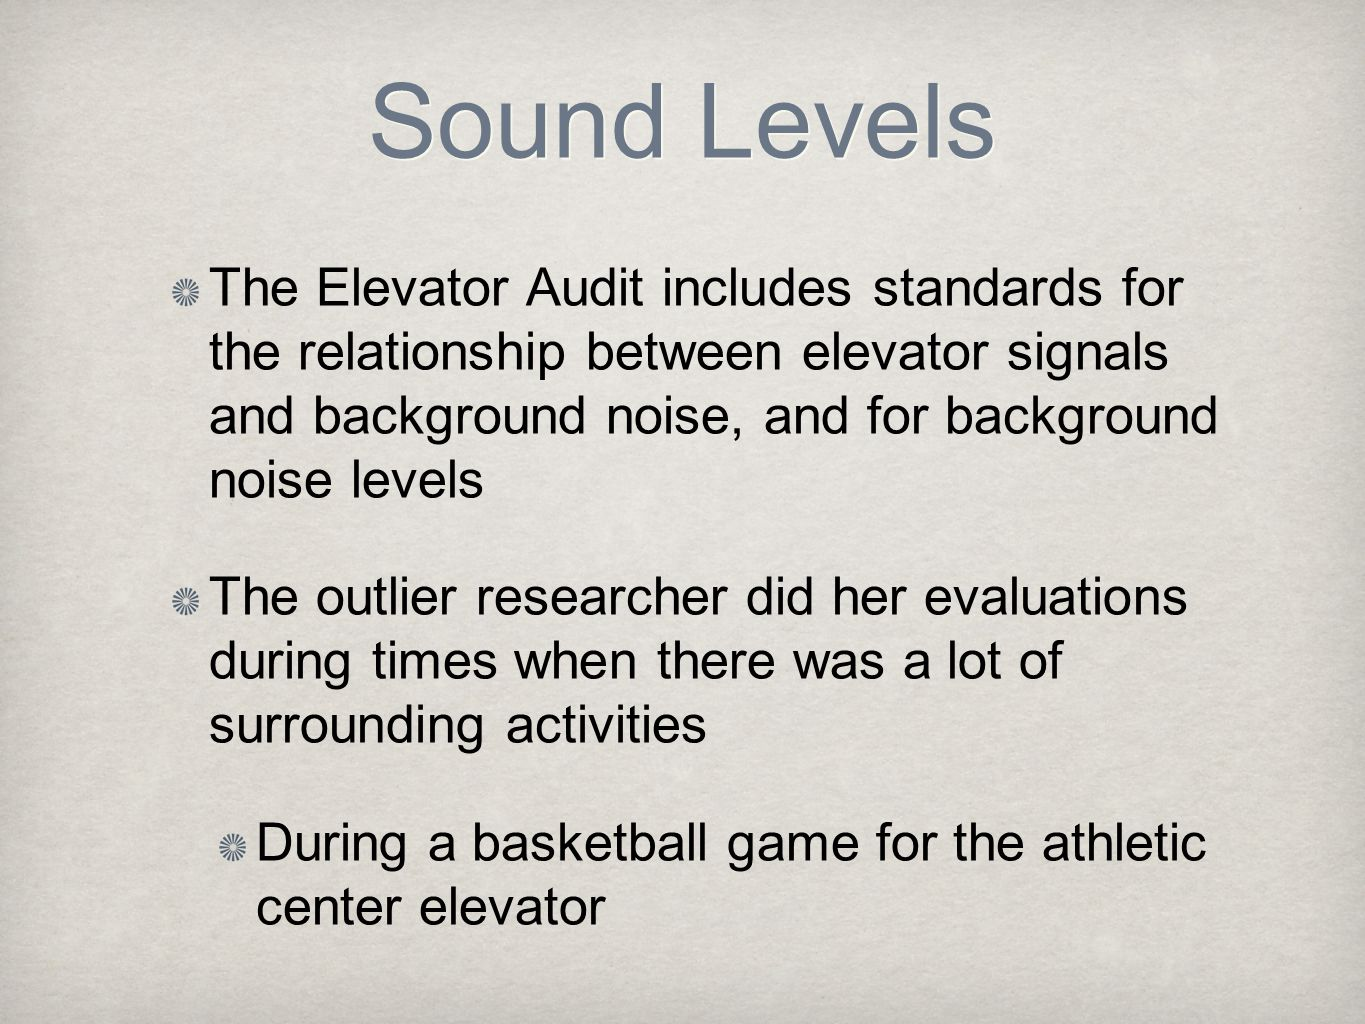 Sound Levels The Elevator Audit includes standards for the relationship between elevator signals and background noise, and for background noise levels The outlier researcher did her evaluations during times when there was a lot of surrounding activities During a basketball game for the athletic center elevator